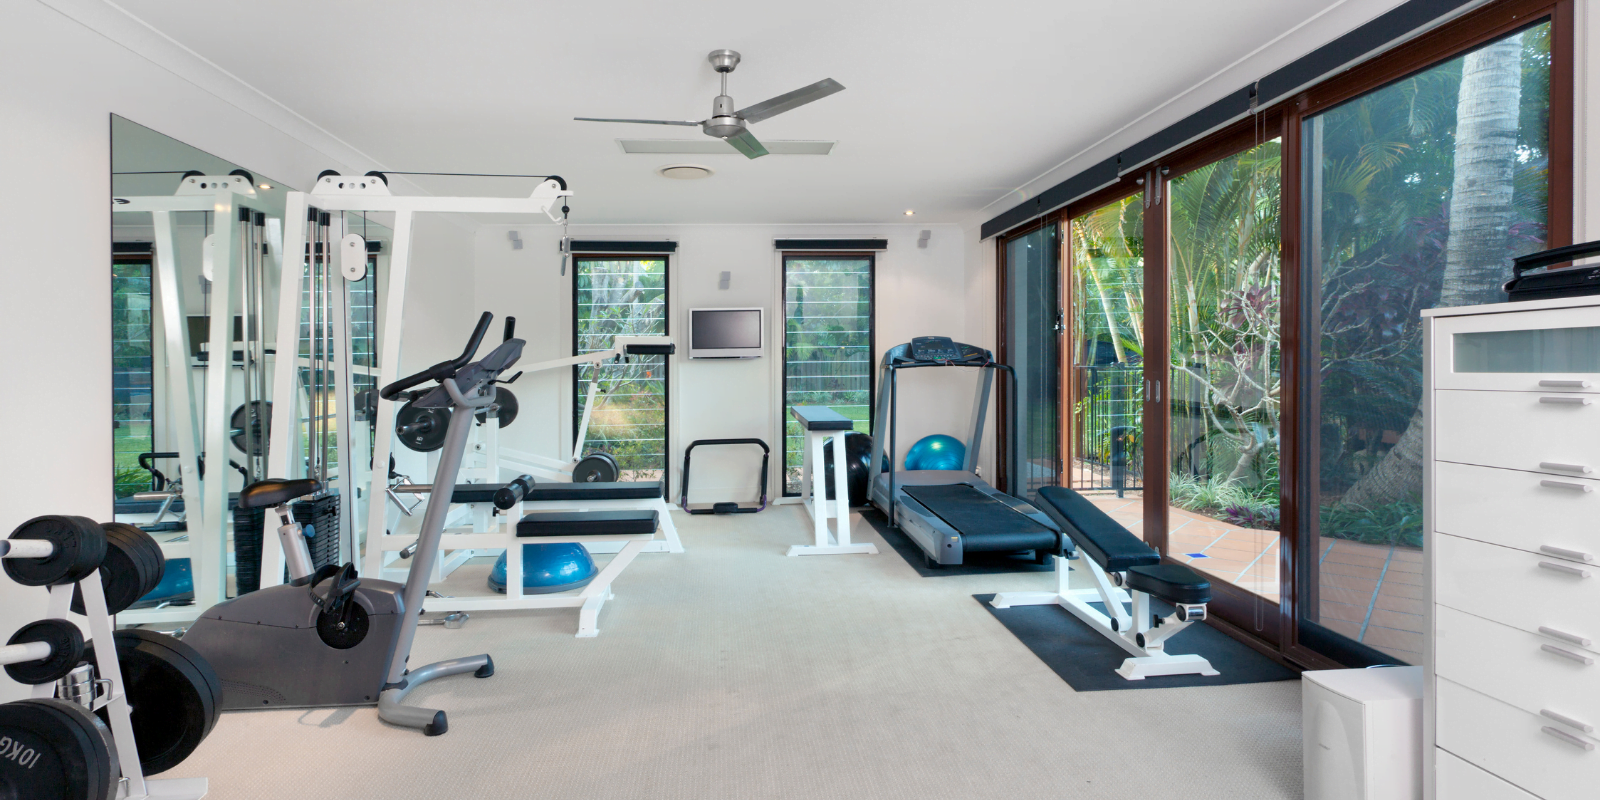 How to Pack Up and Move Your Home Gym Equipment